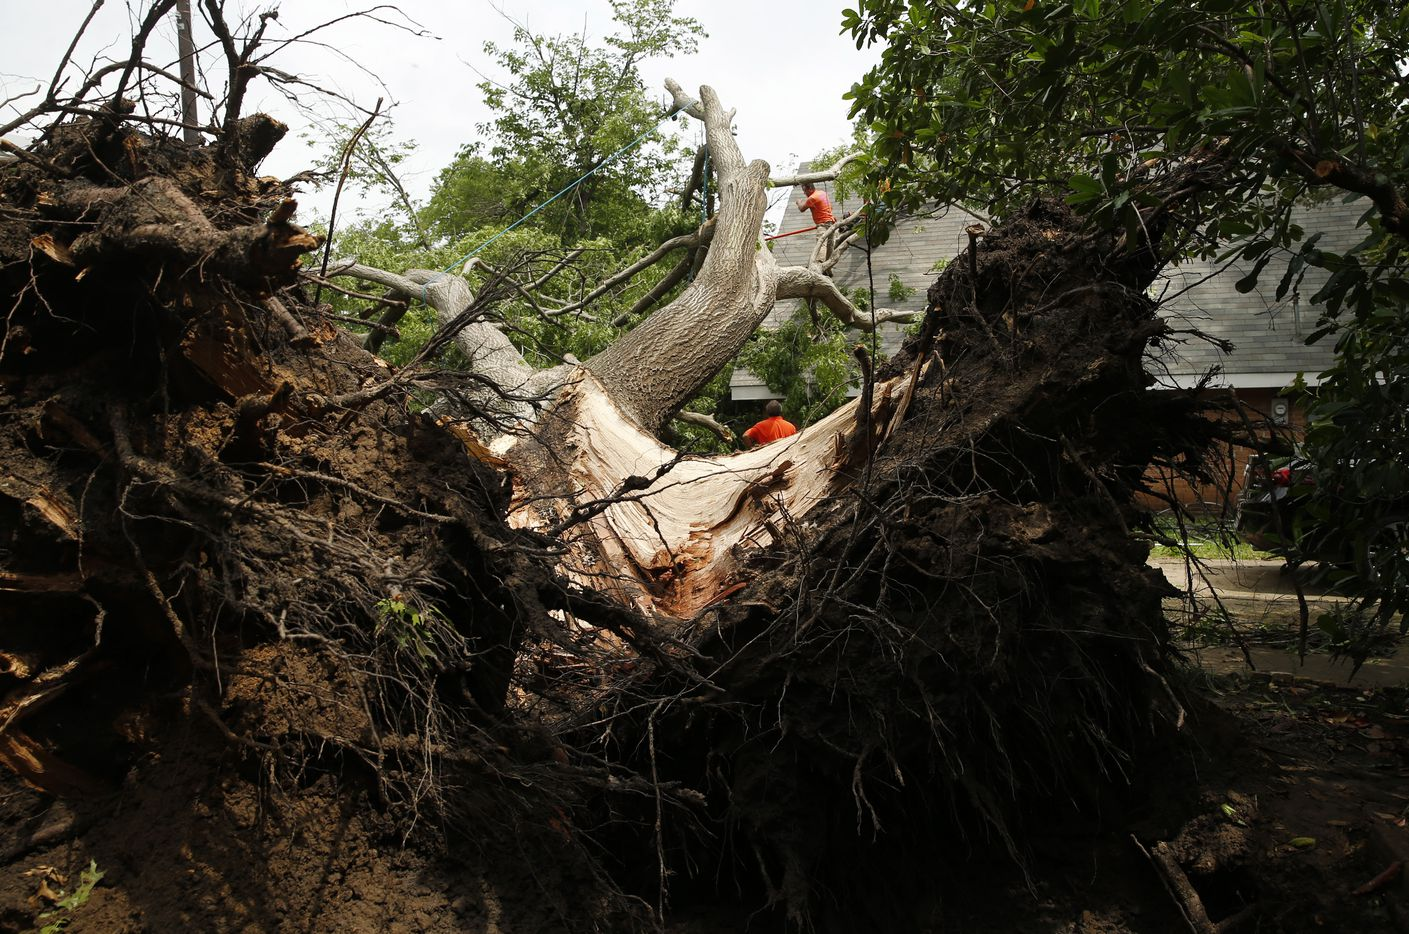 Manuel Alcantar trims a red oak tree from the roof of a house after a tornado passed through in Denton, Texas on Wednesday, May 1, 2019. The tree was planted in 1963. (Vernon Bryant/The Dallas Morning News)